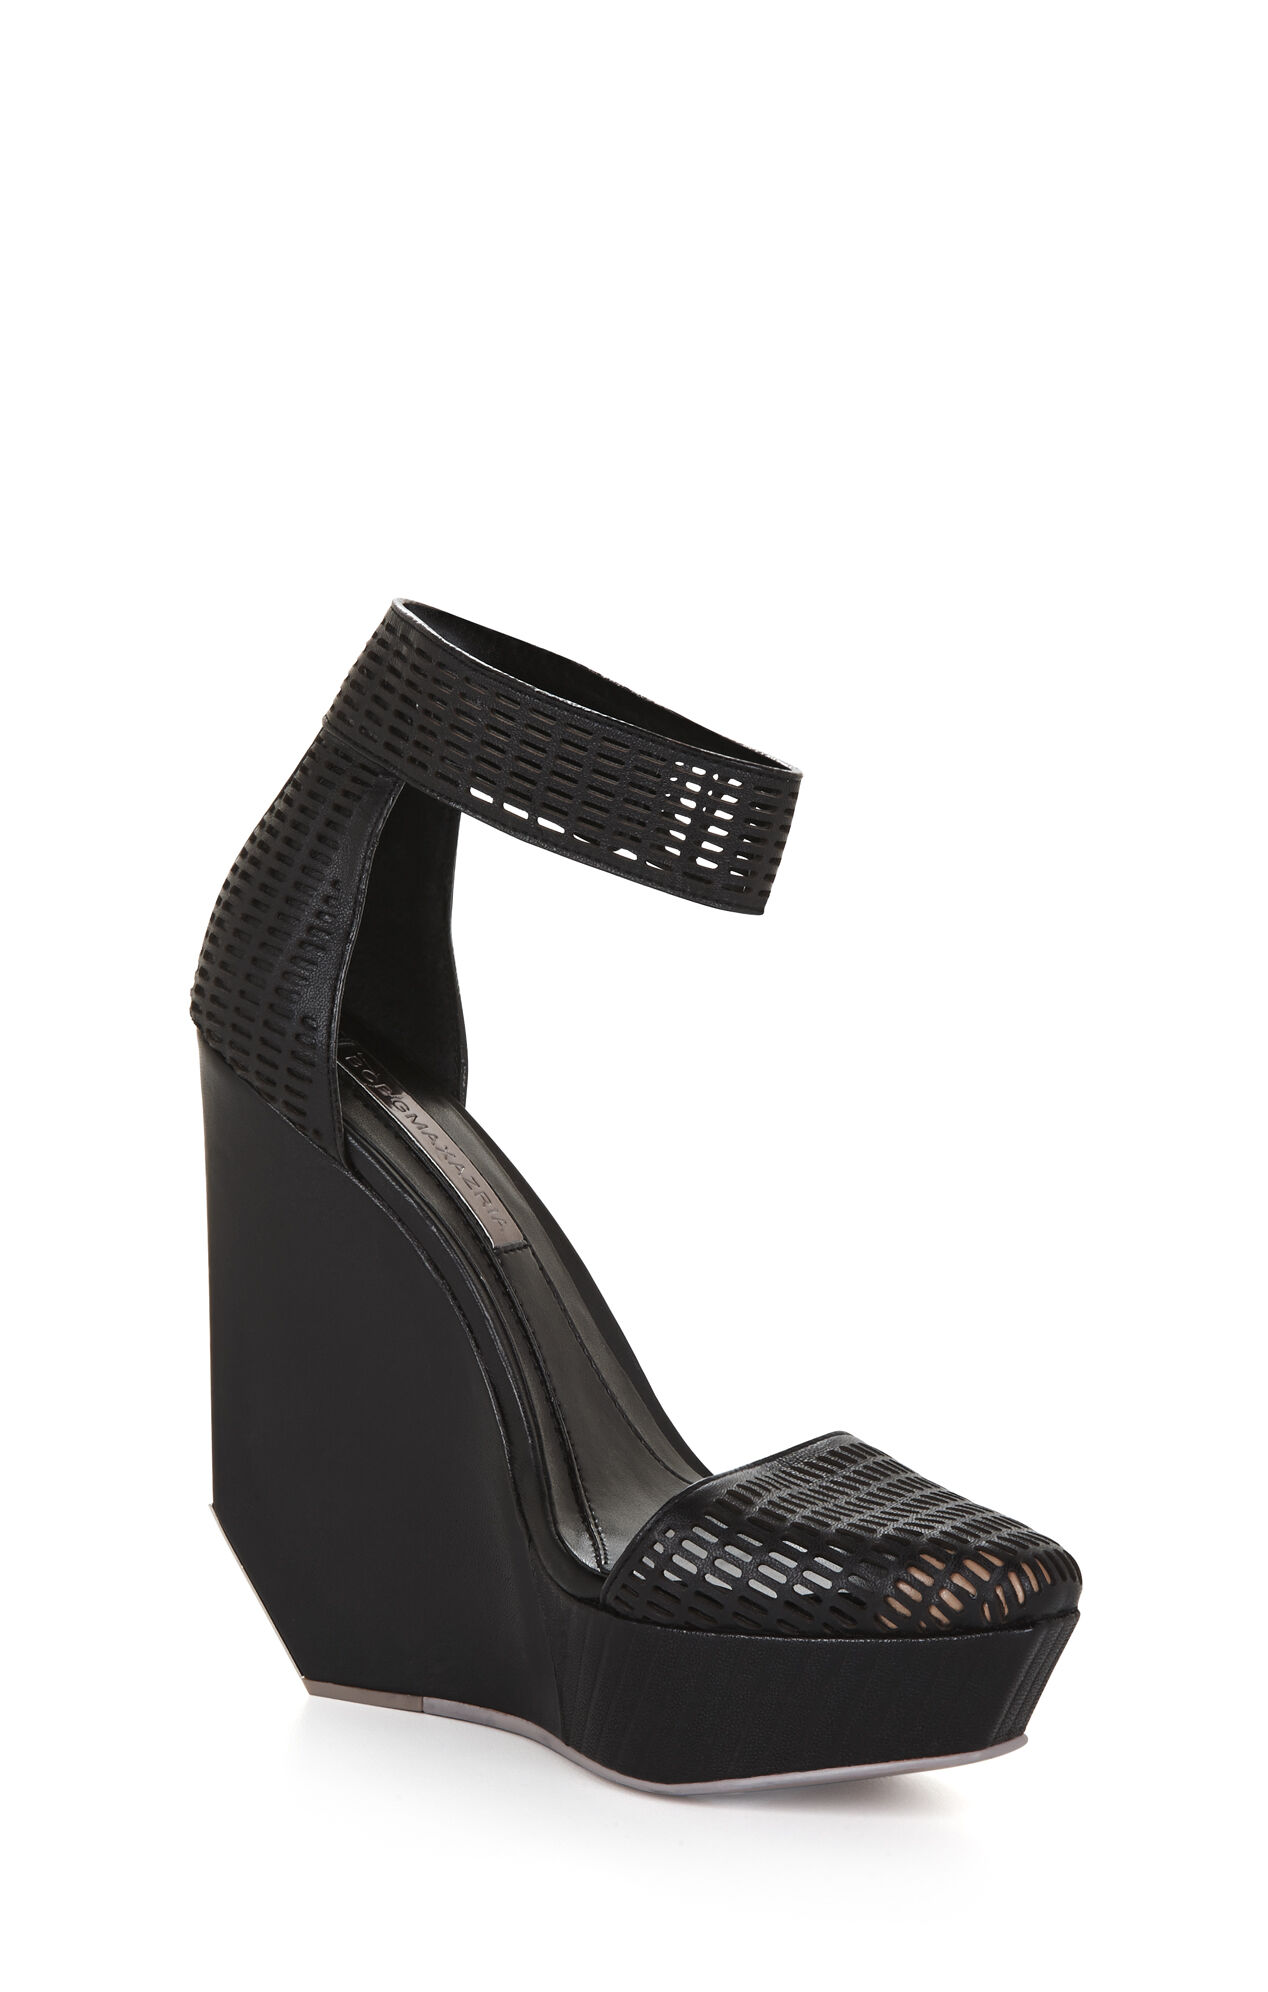 Austin High-Heel Day Wedge